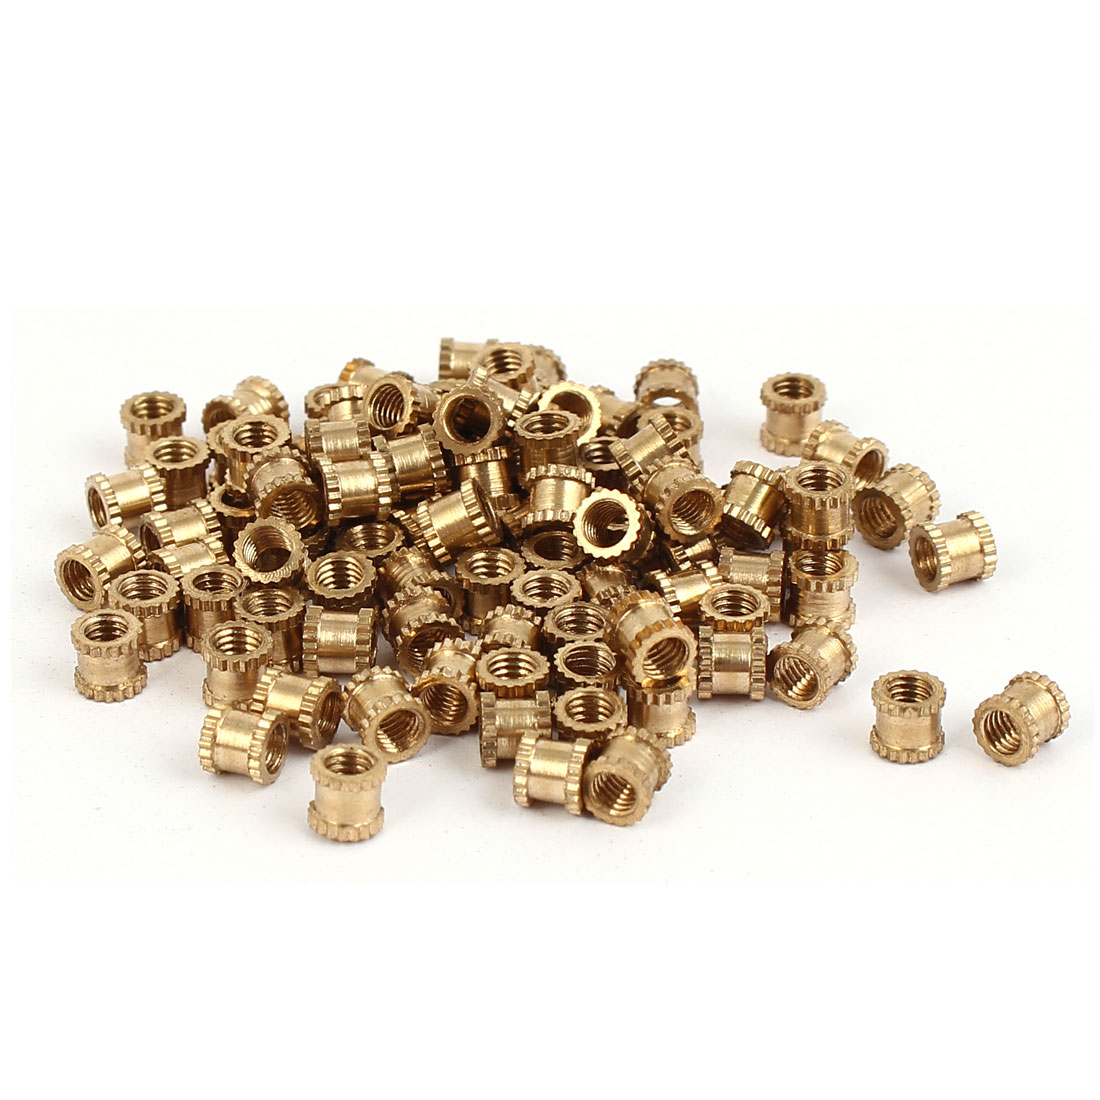 M3 x 4mm x 4.3mm Brass Knurled Threaded Round Insert Embedded Nuts 100PCS